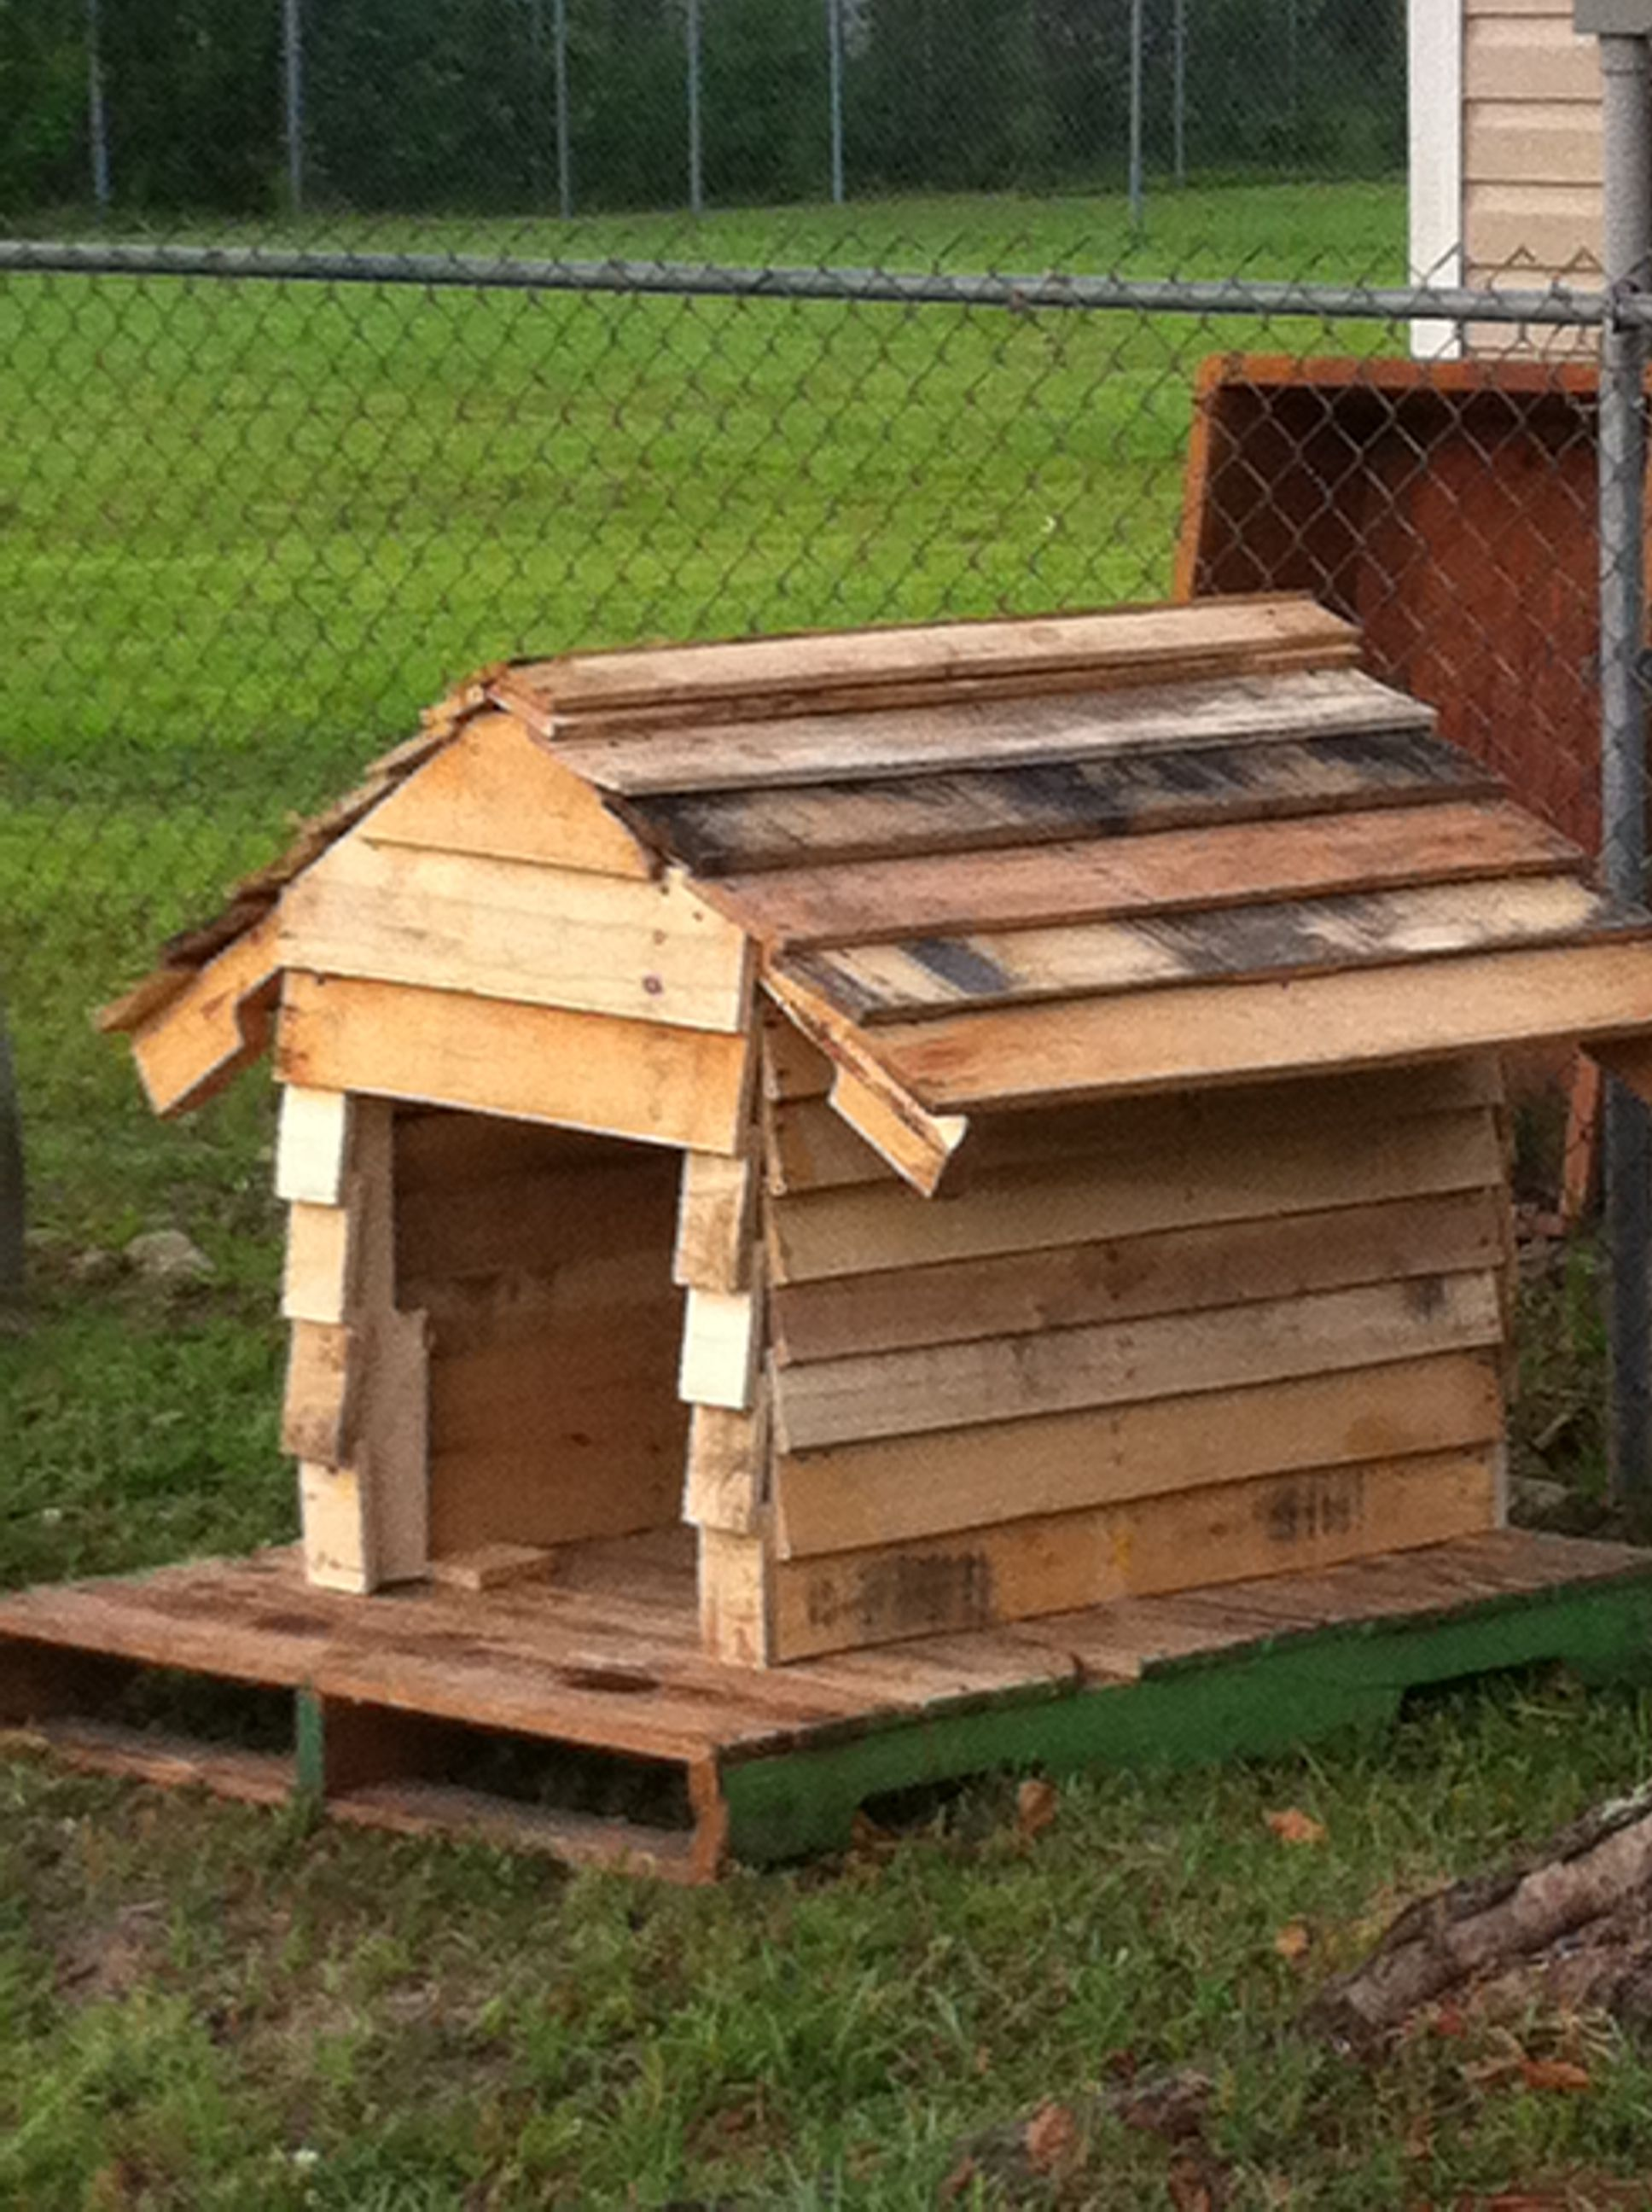 Dog House Made From Pallets With Images Build A Dog House Dog